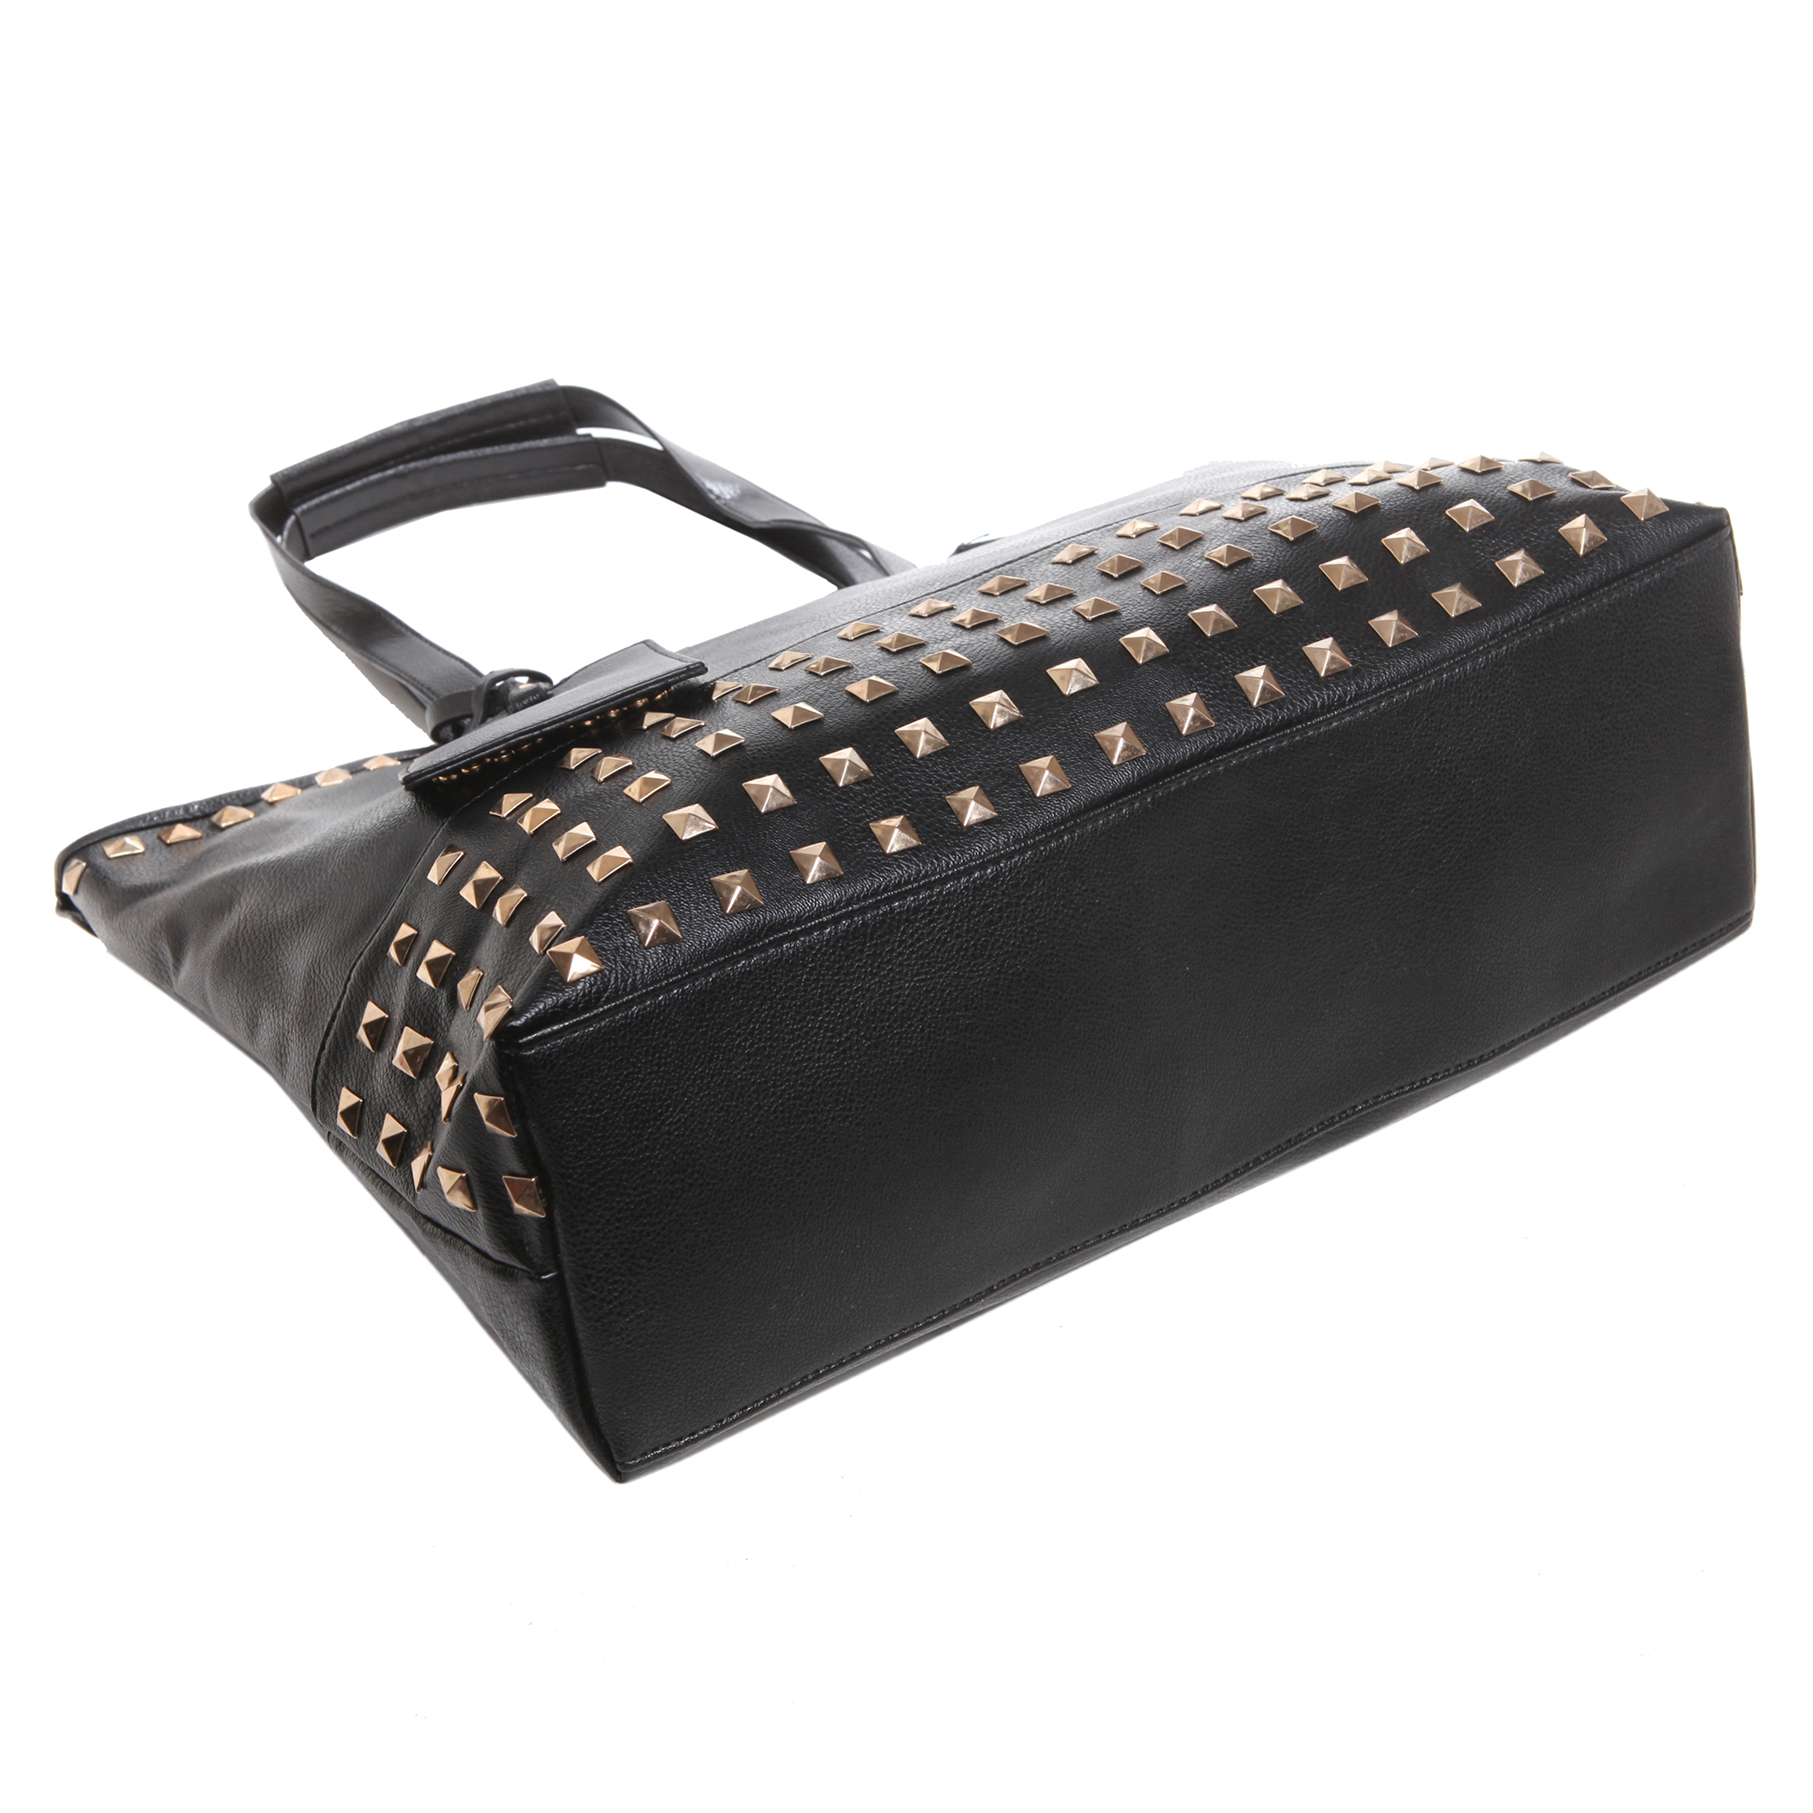 mg-collection-cosette-gothic-studded-shopper-tb-h0418blk-5.jpg